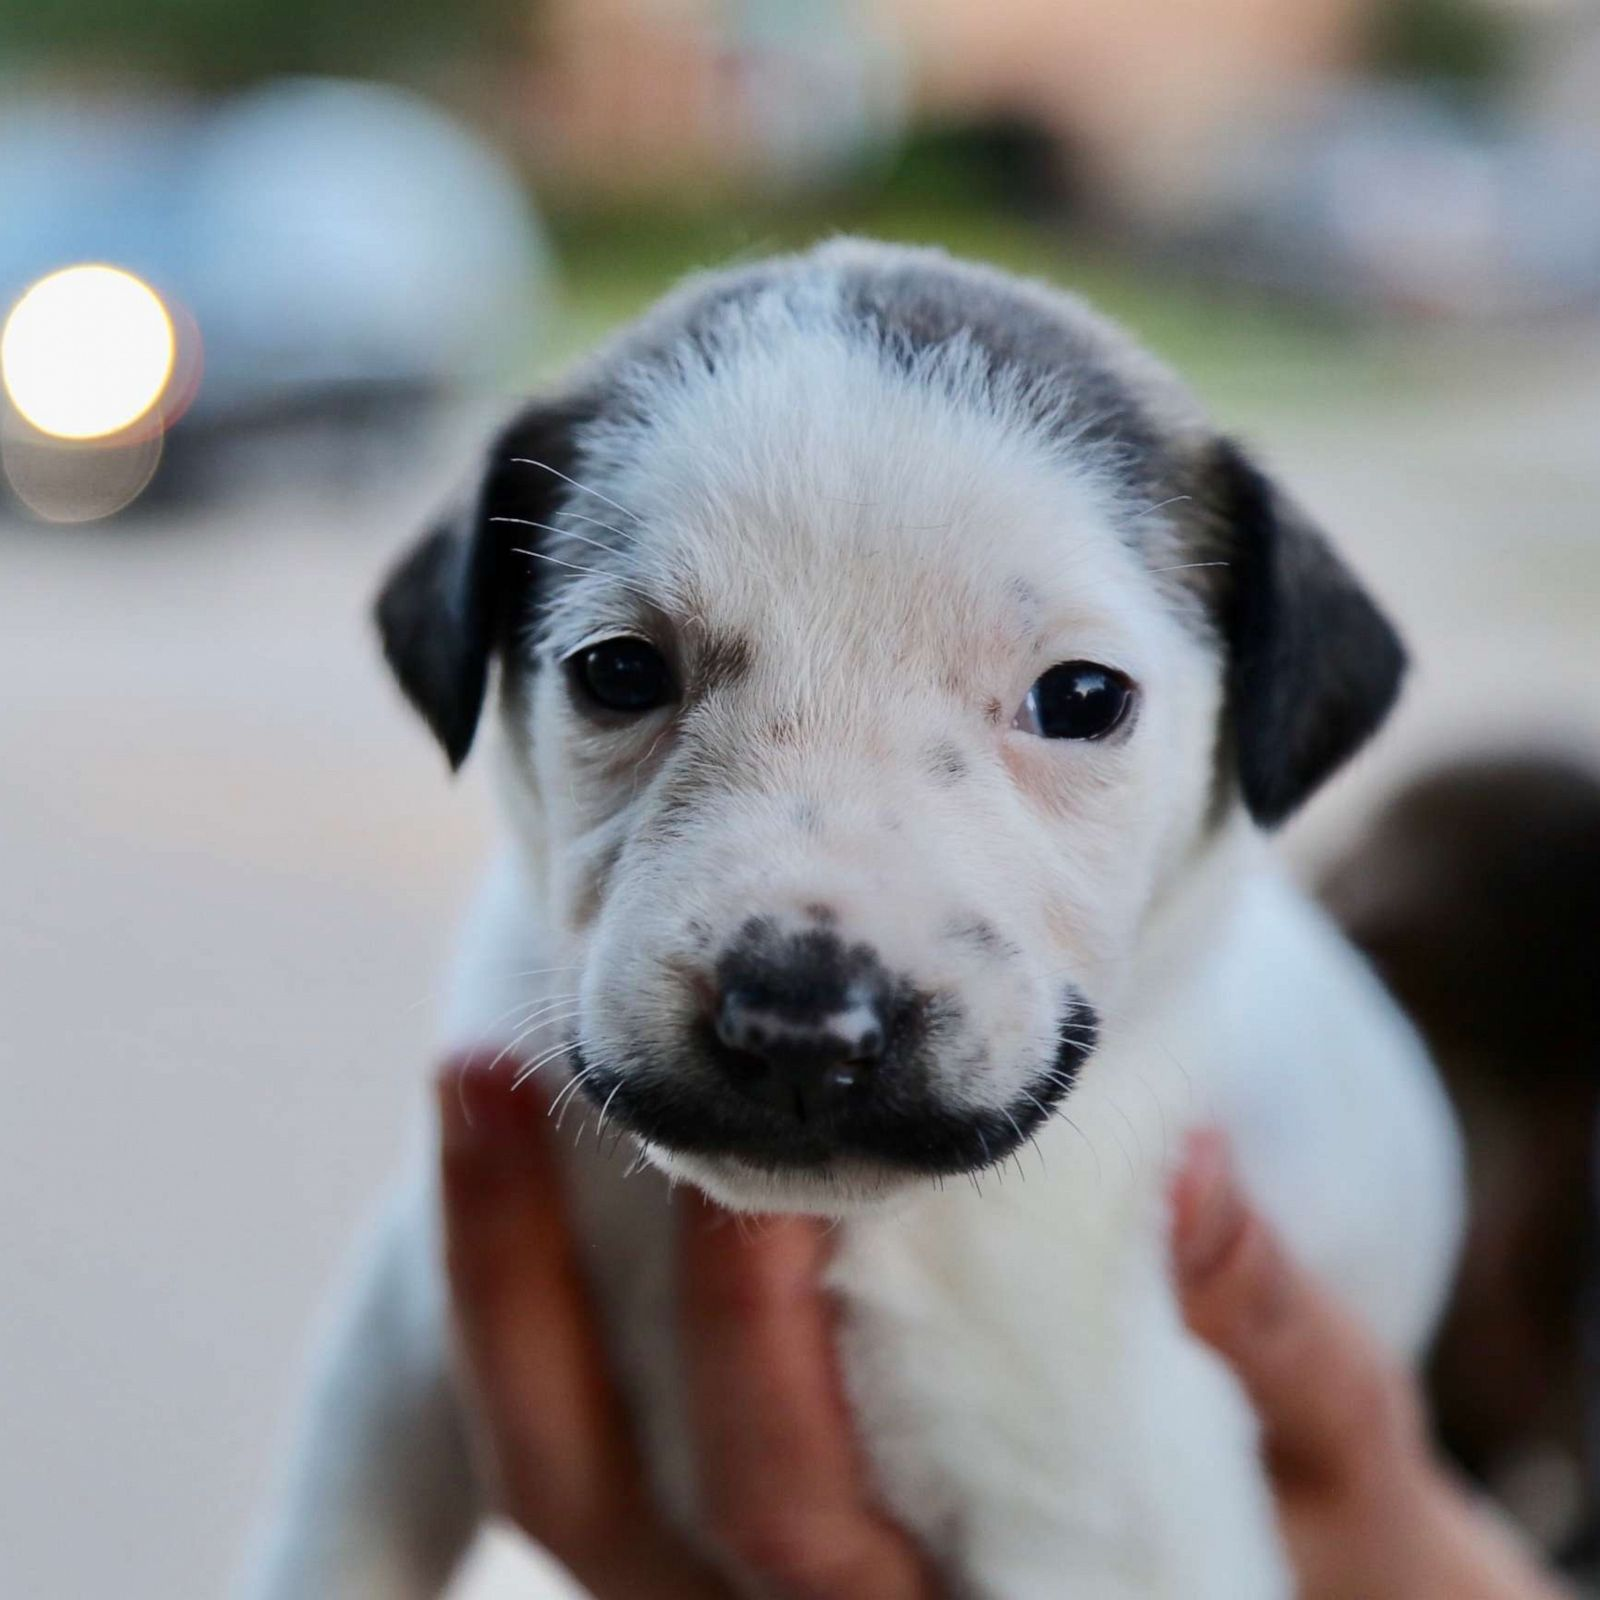 this adorable puppy with